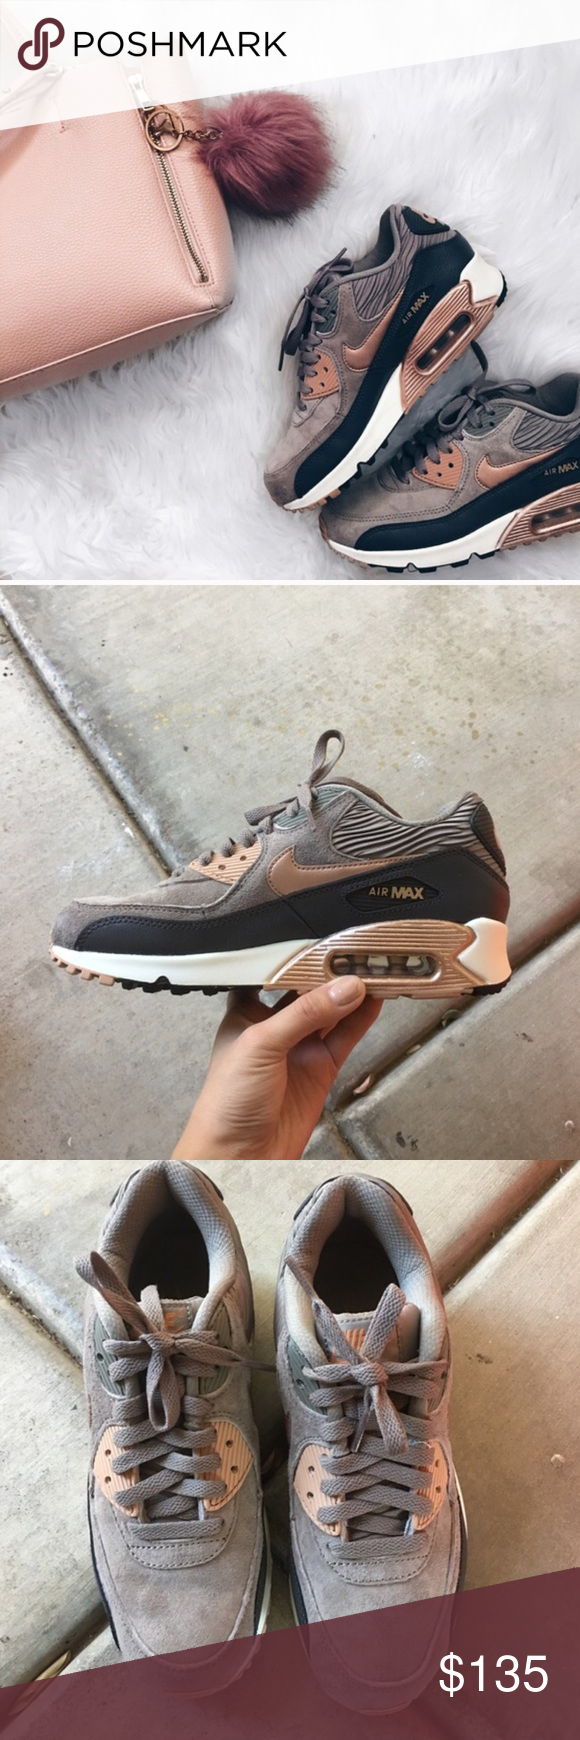 OFFER MEWomen's Nike Air Max 90 Bronze Brand new with the